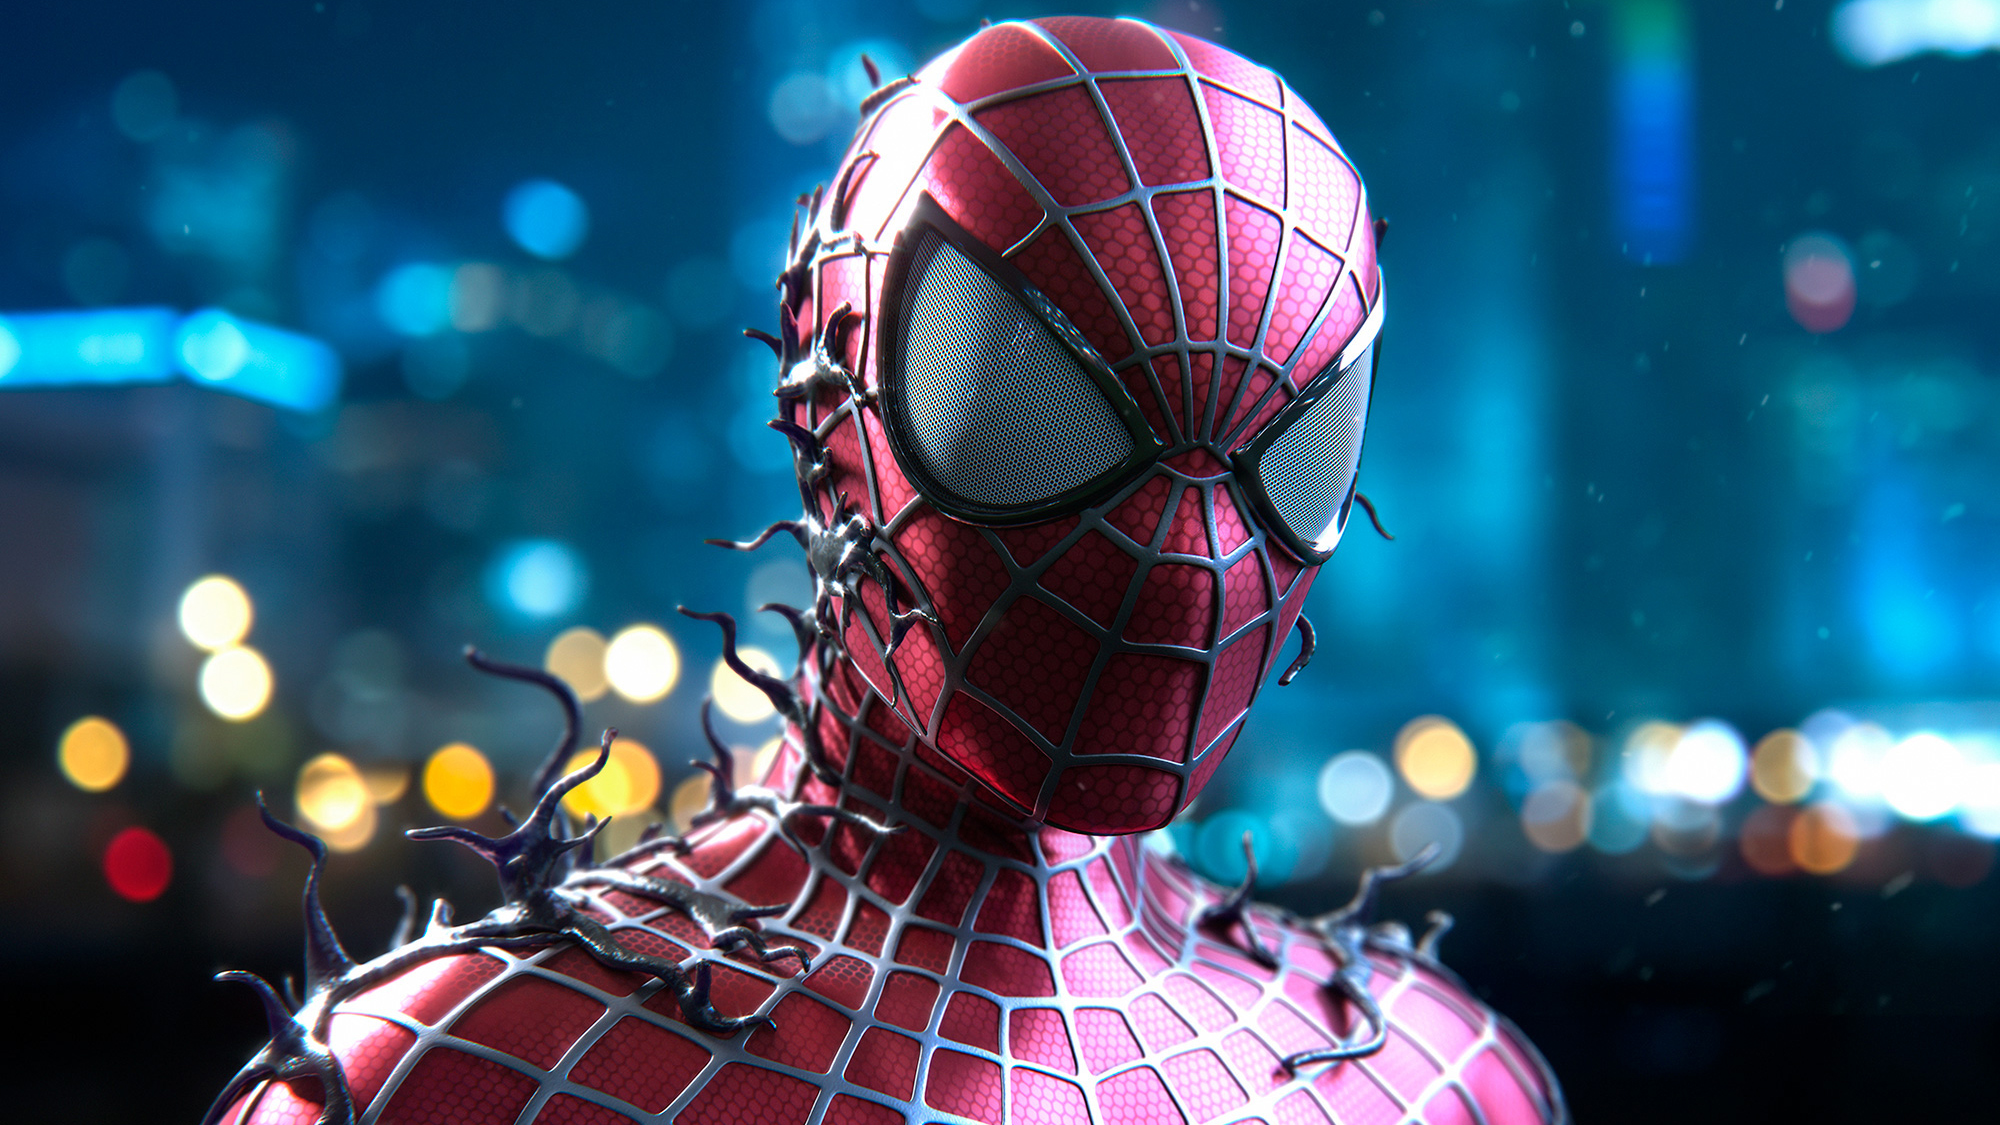 Spiderman Wallpaper 3d Android Spider Man Fan Art Wallpapers Hd Wallpapers Id 26186